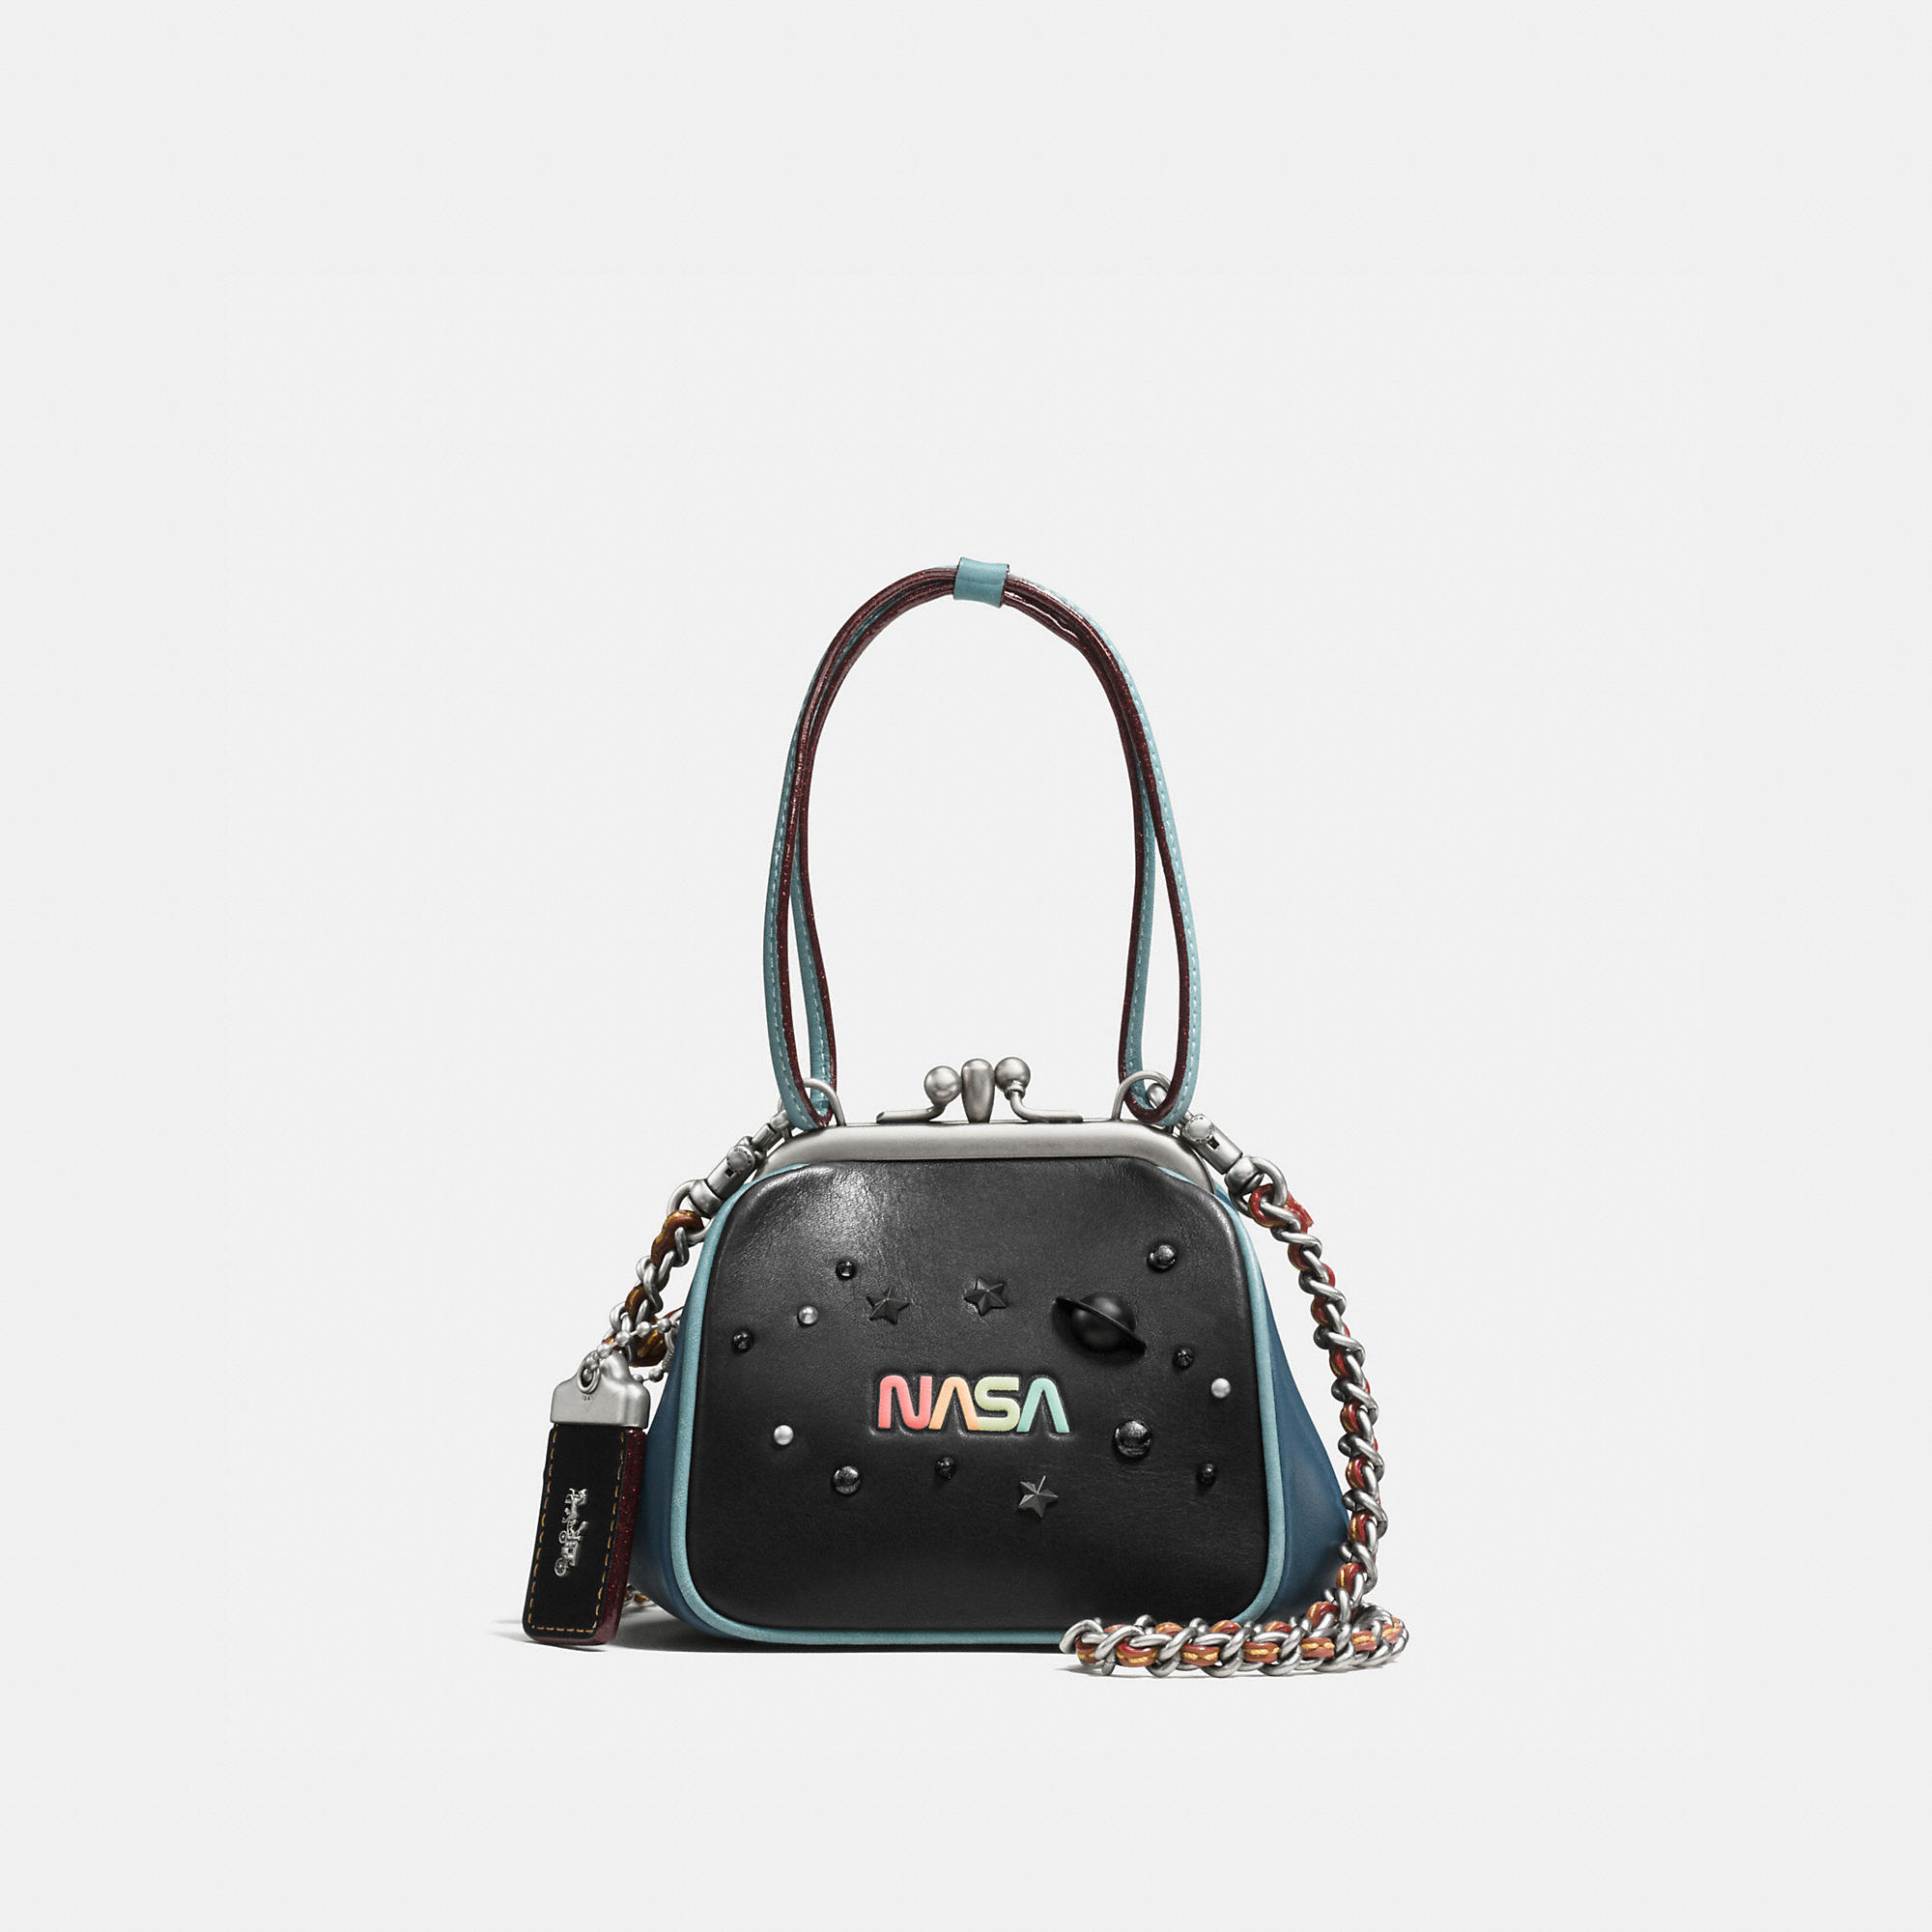 Coach Kisslock Frame Bag 23 In Glovetanned Leather With Space Embellishment